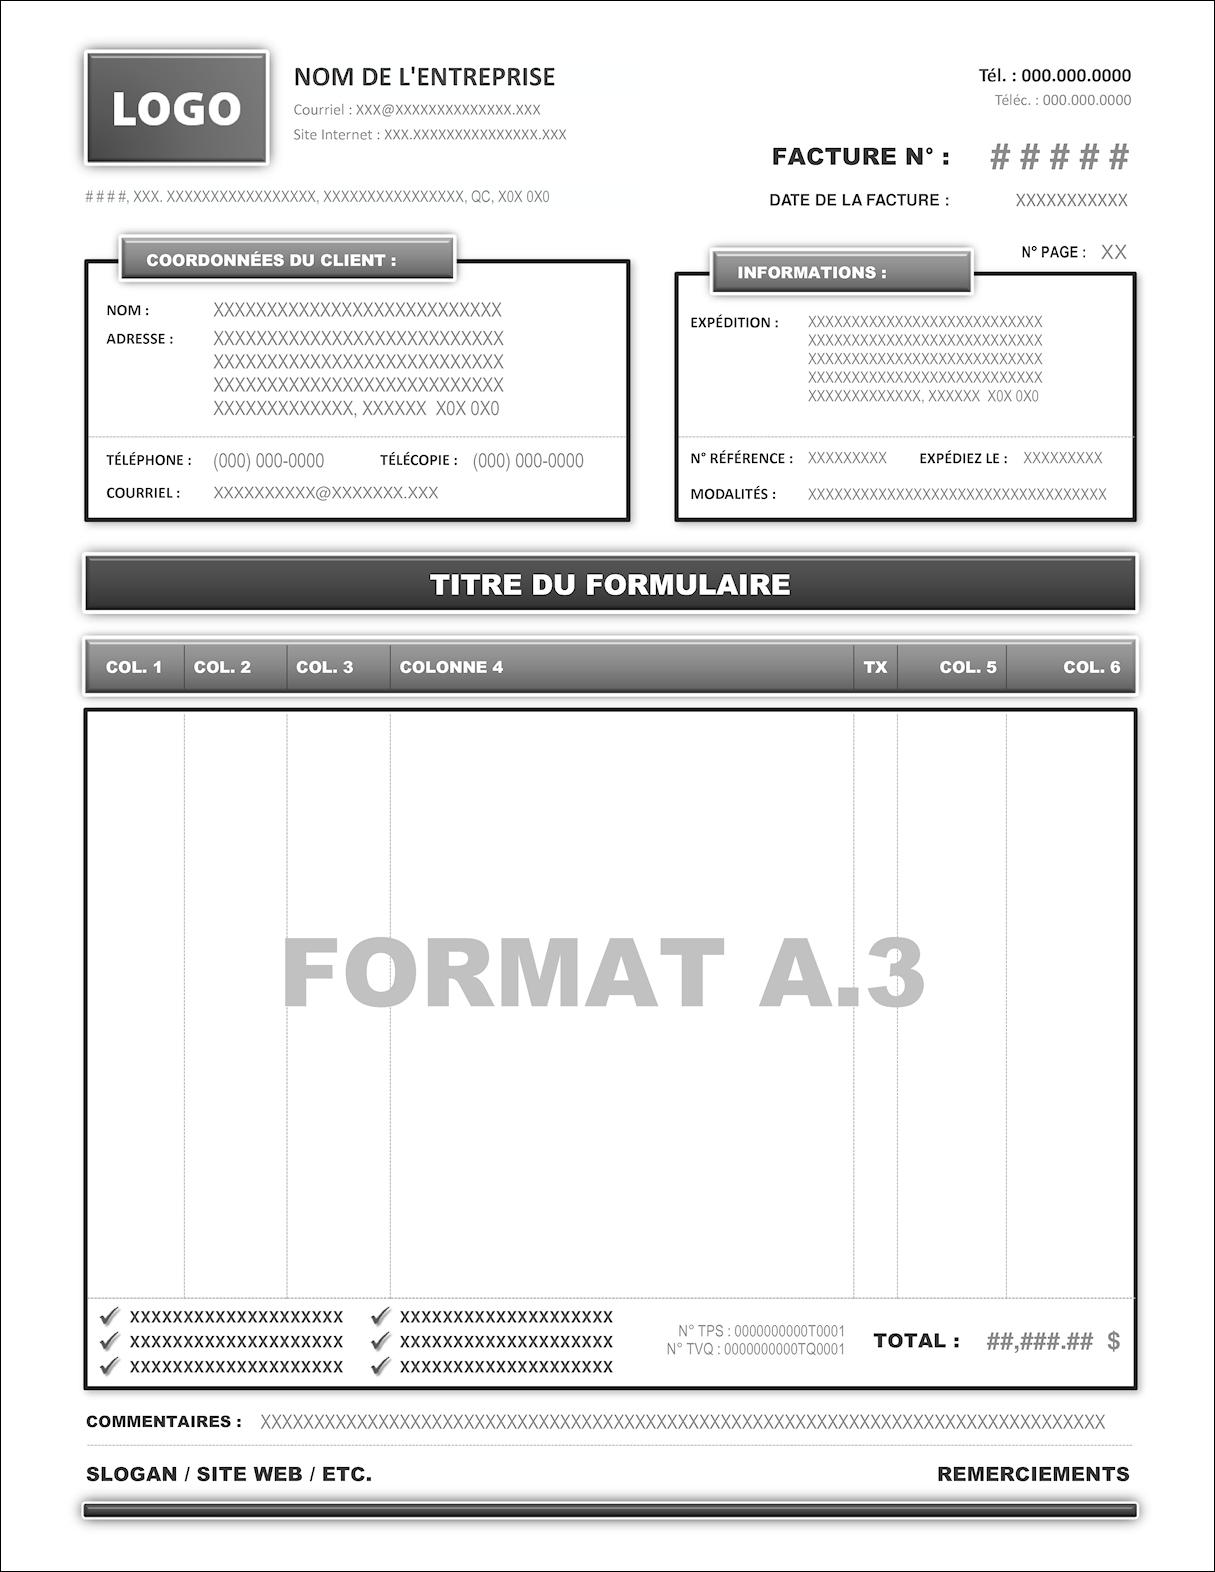 FORMAT A.3